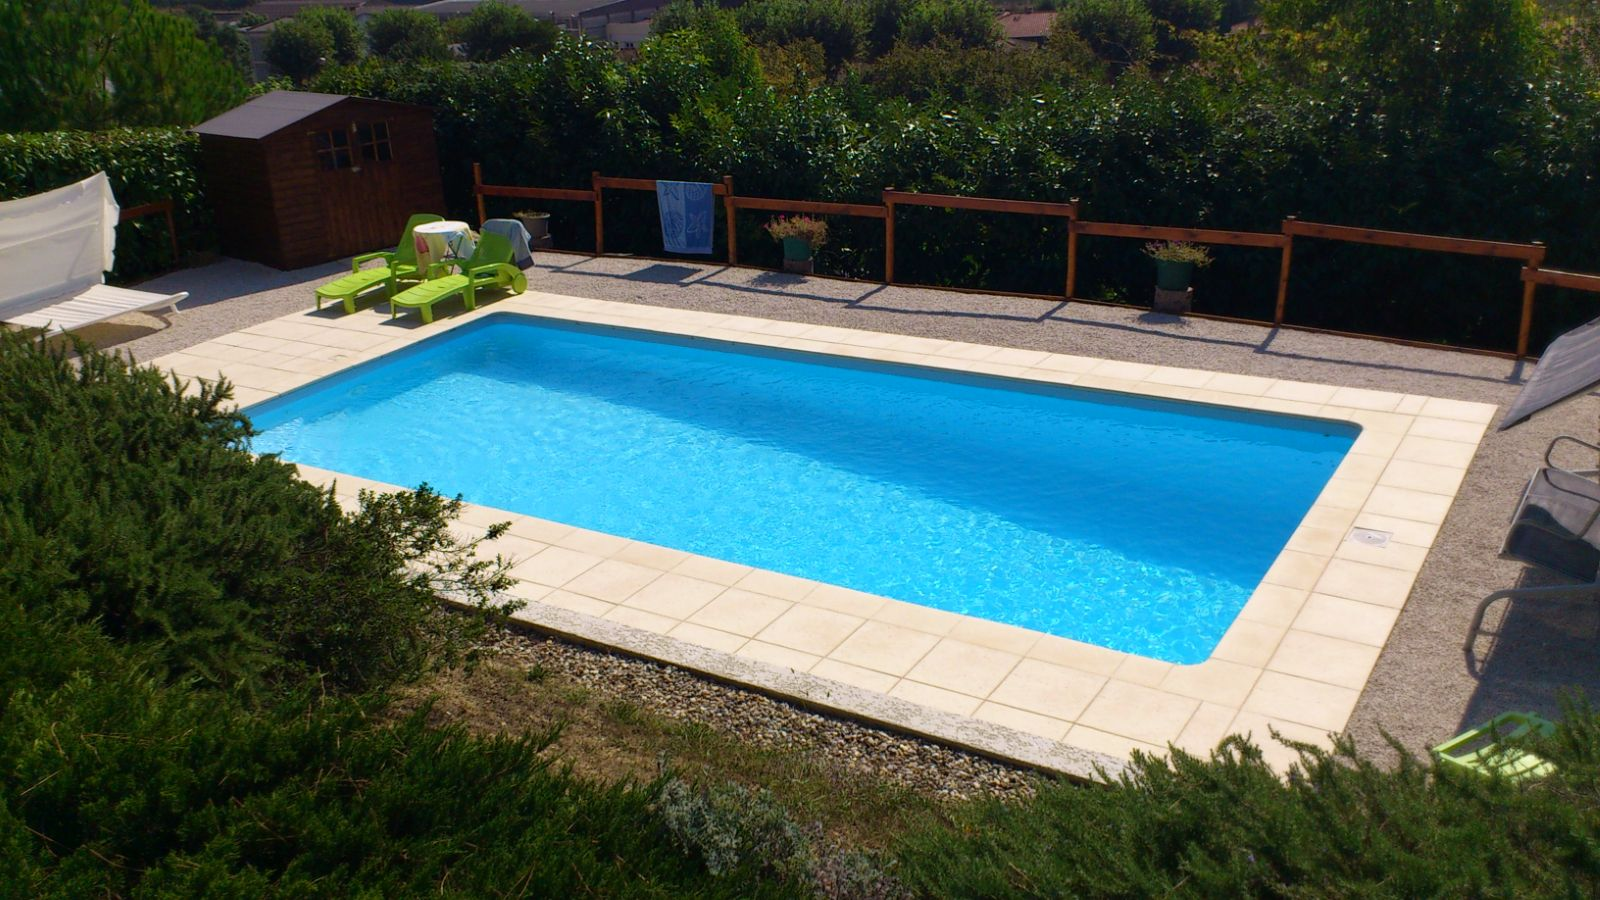 L c piscine construction entretien piscines etanch it des for Piscine hors sol pvc arme